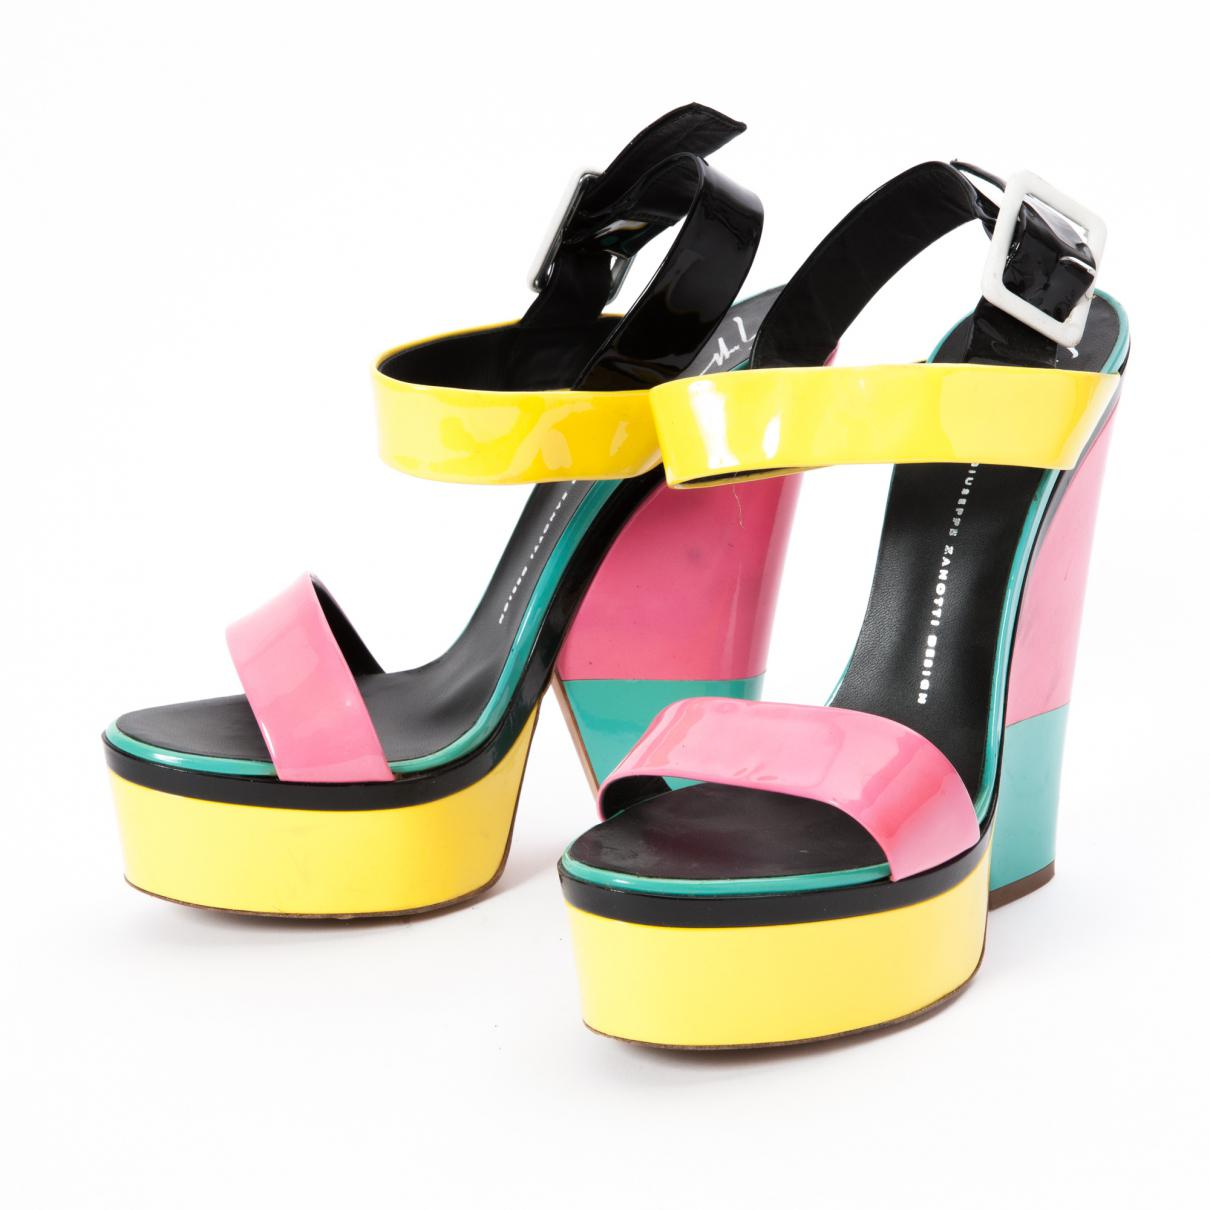 f4fd3653cc746 Giuseppe Zanotti Pre-owned Patent Leather Sandal in Yellow - Lyst